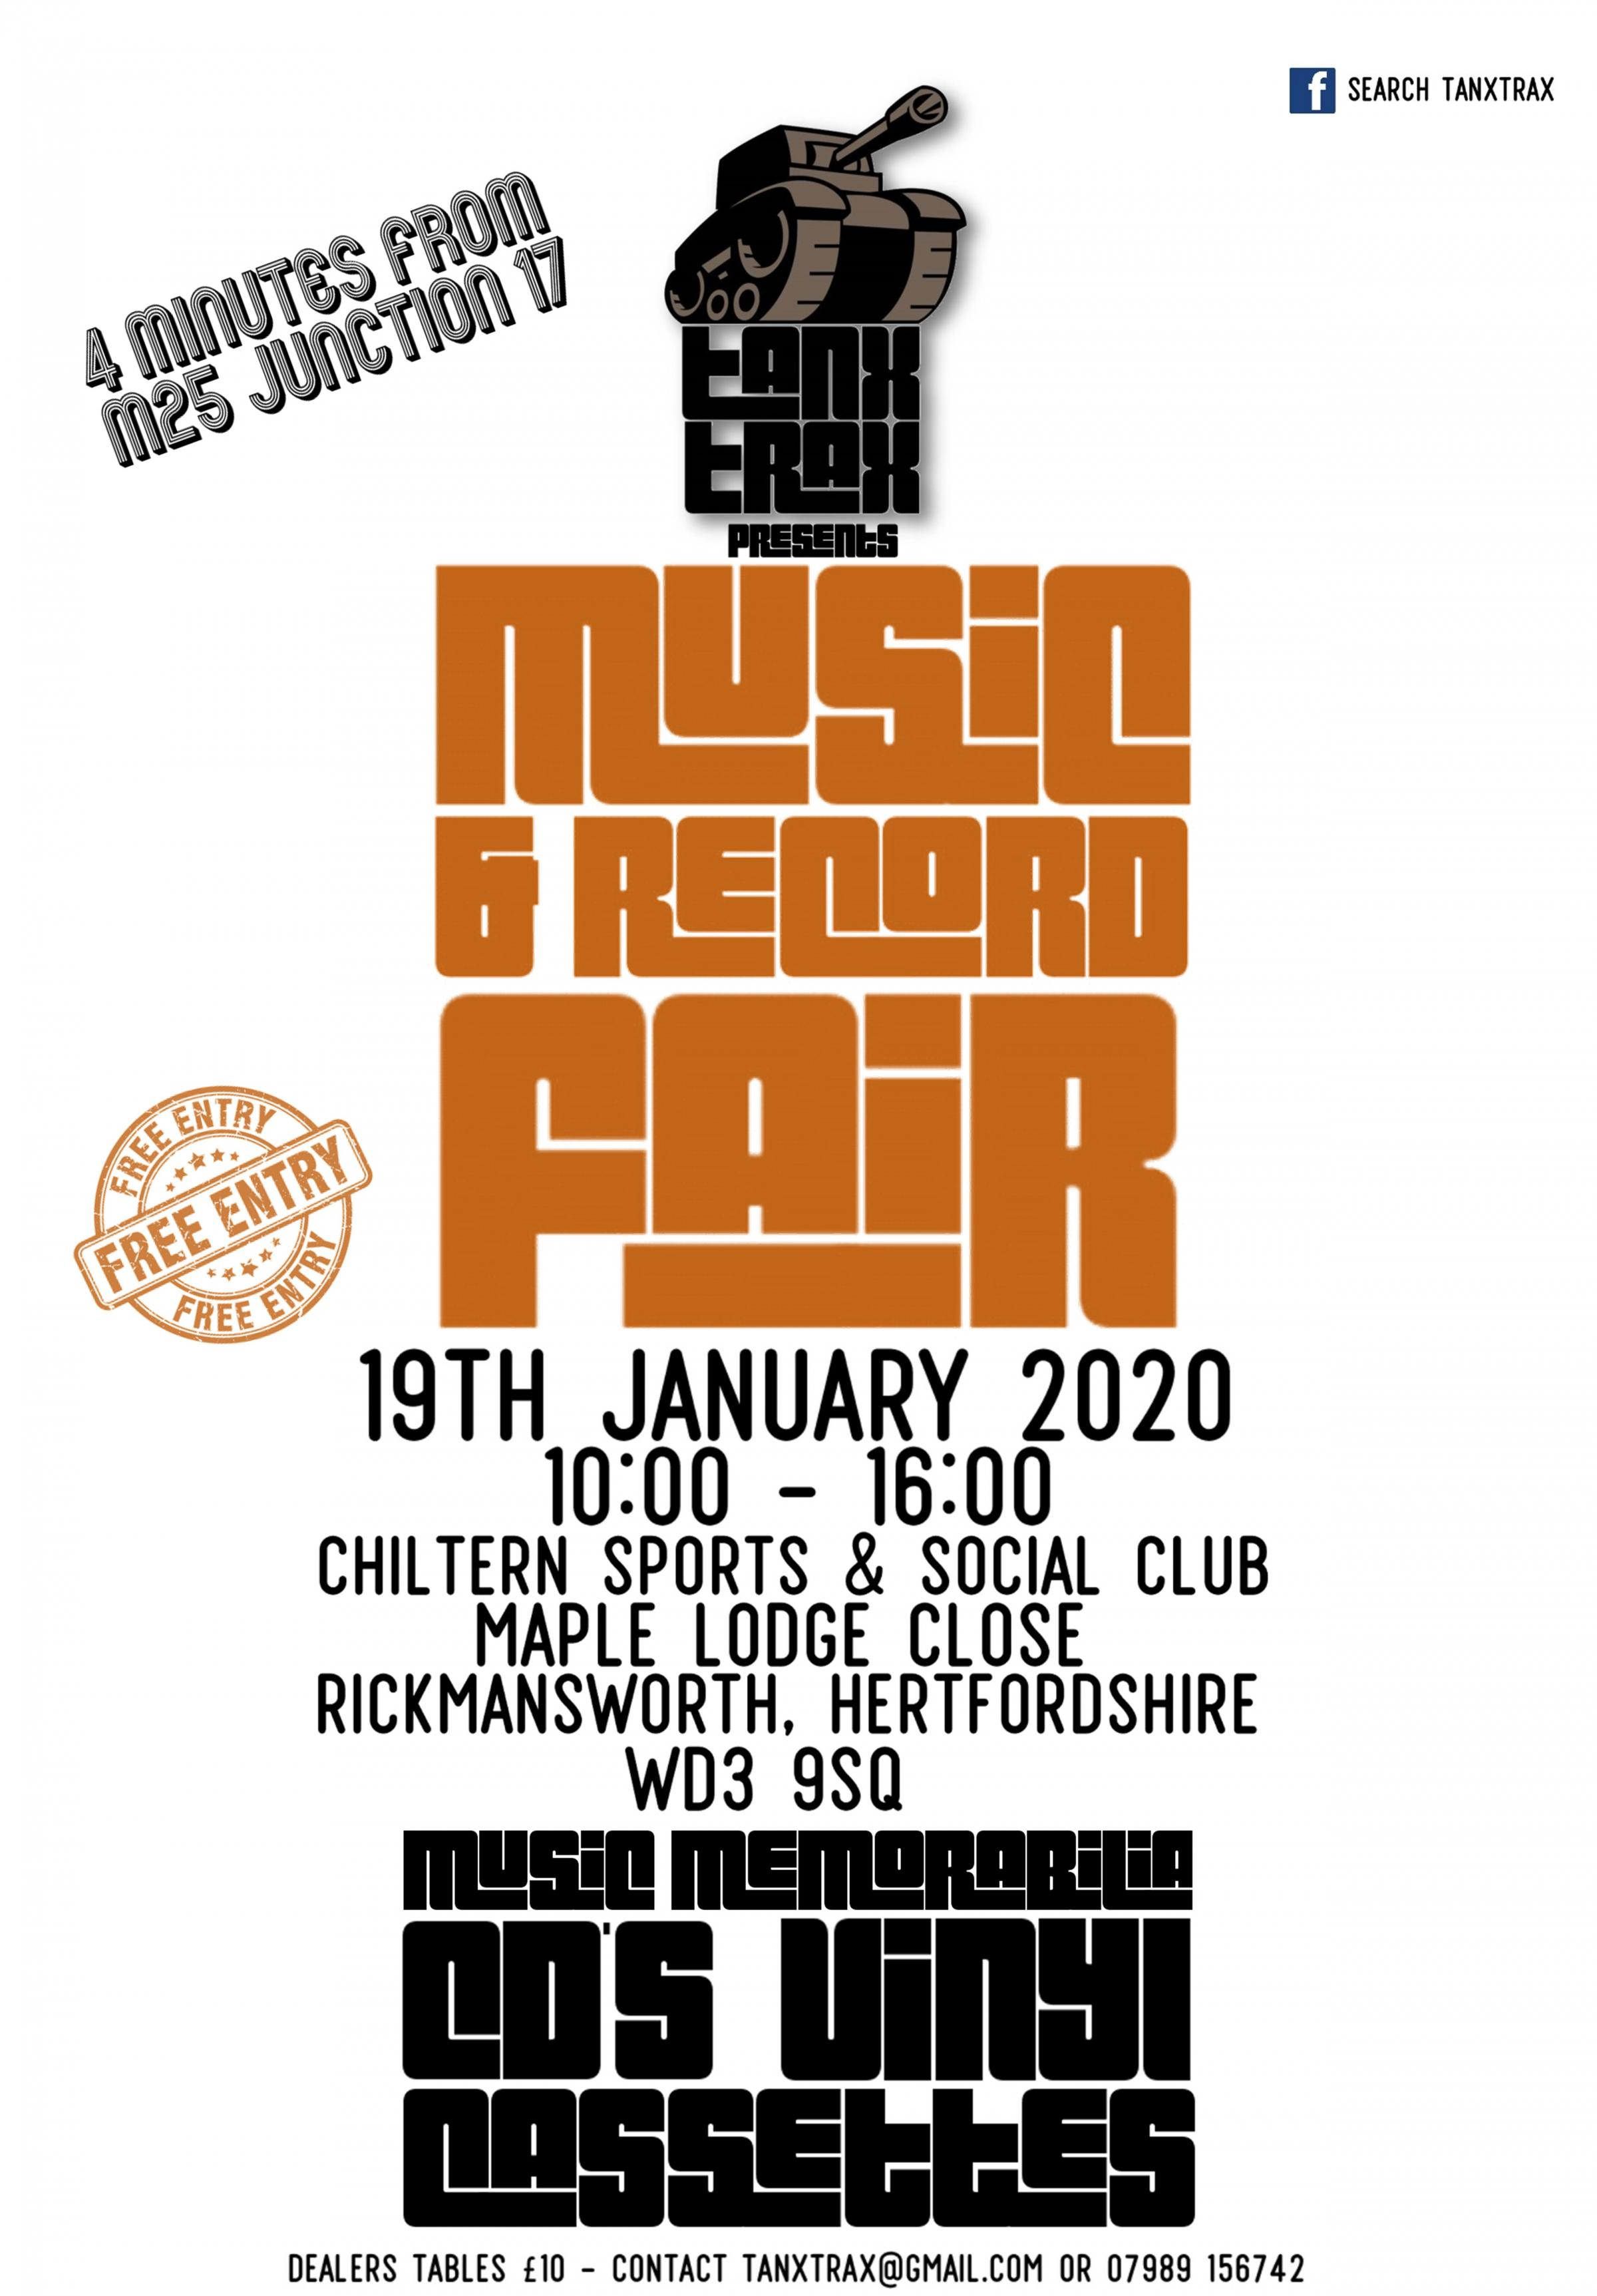 Tanx Trax Record Fair - 19th January 2020 - Rickmansworth